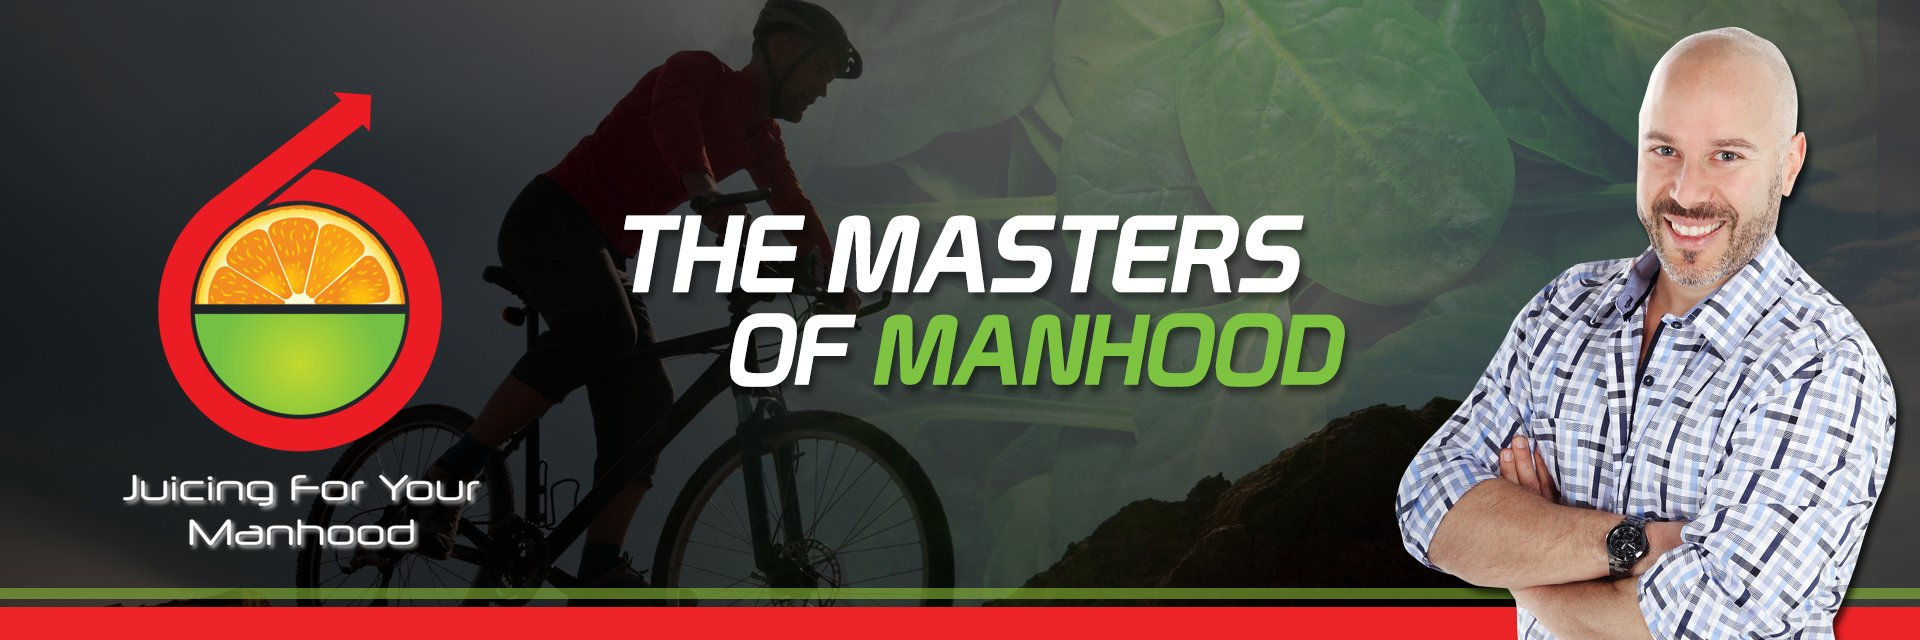 Masters of Manhood private Facebook group